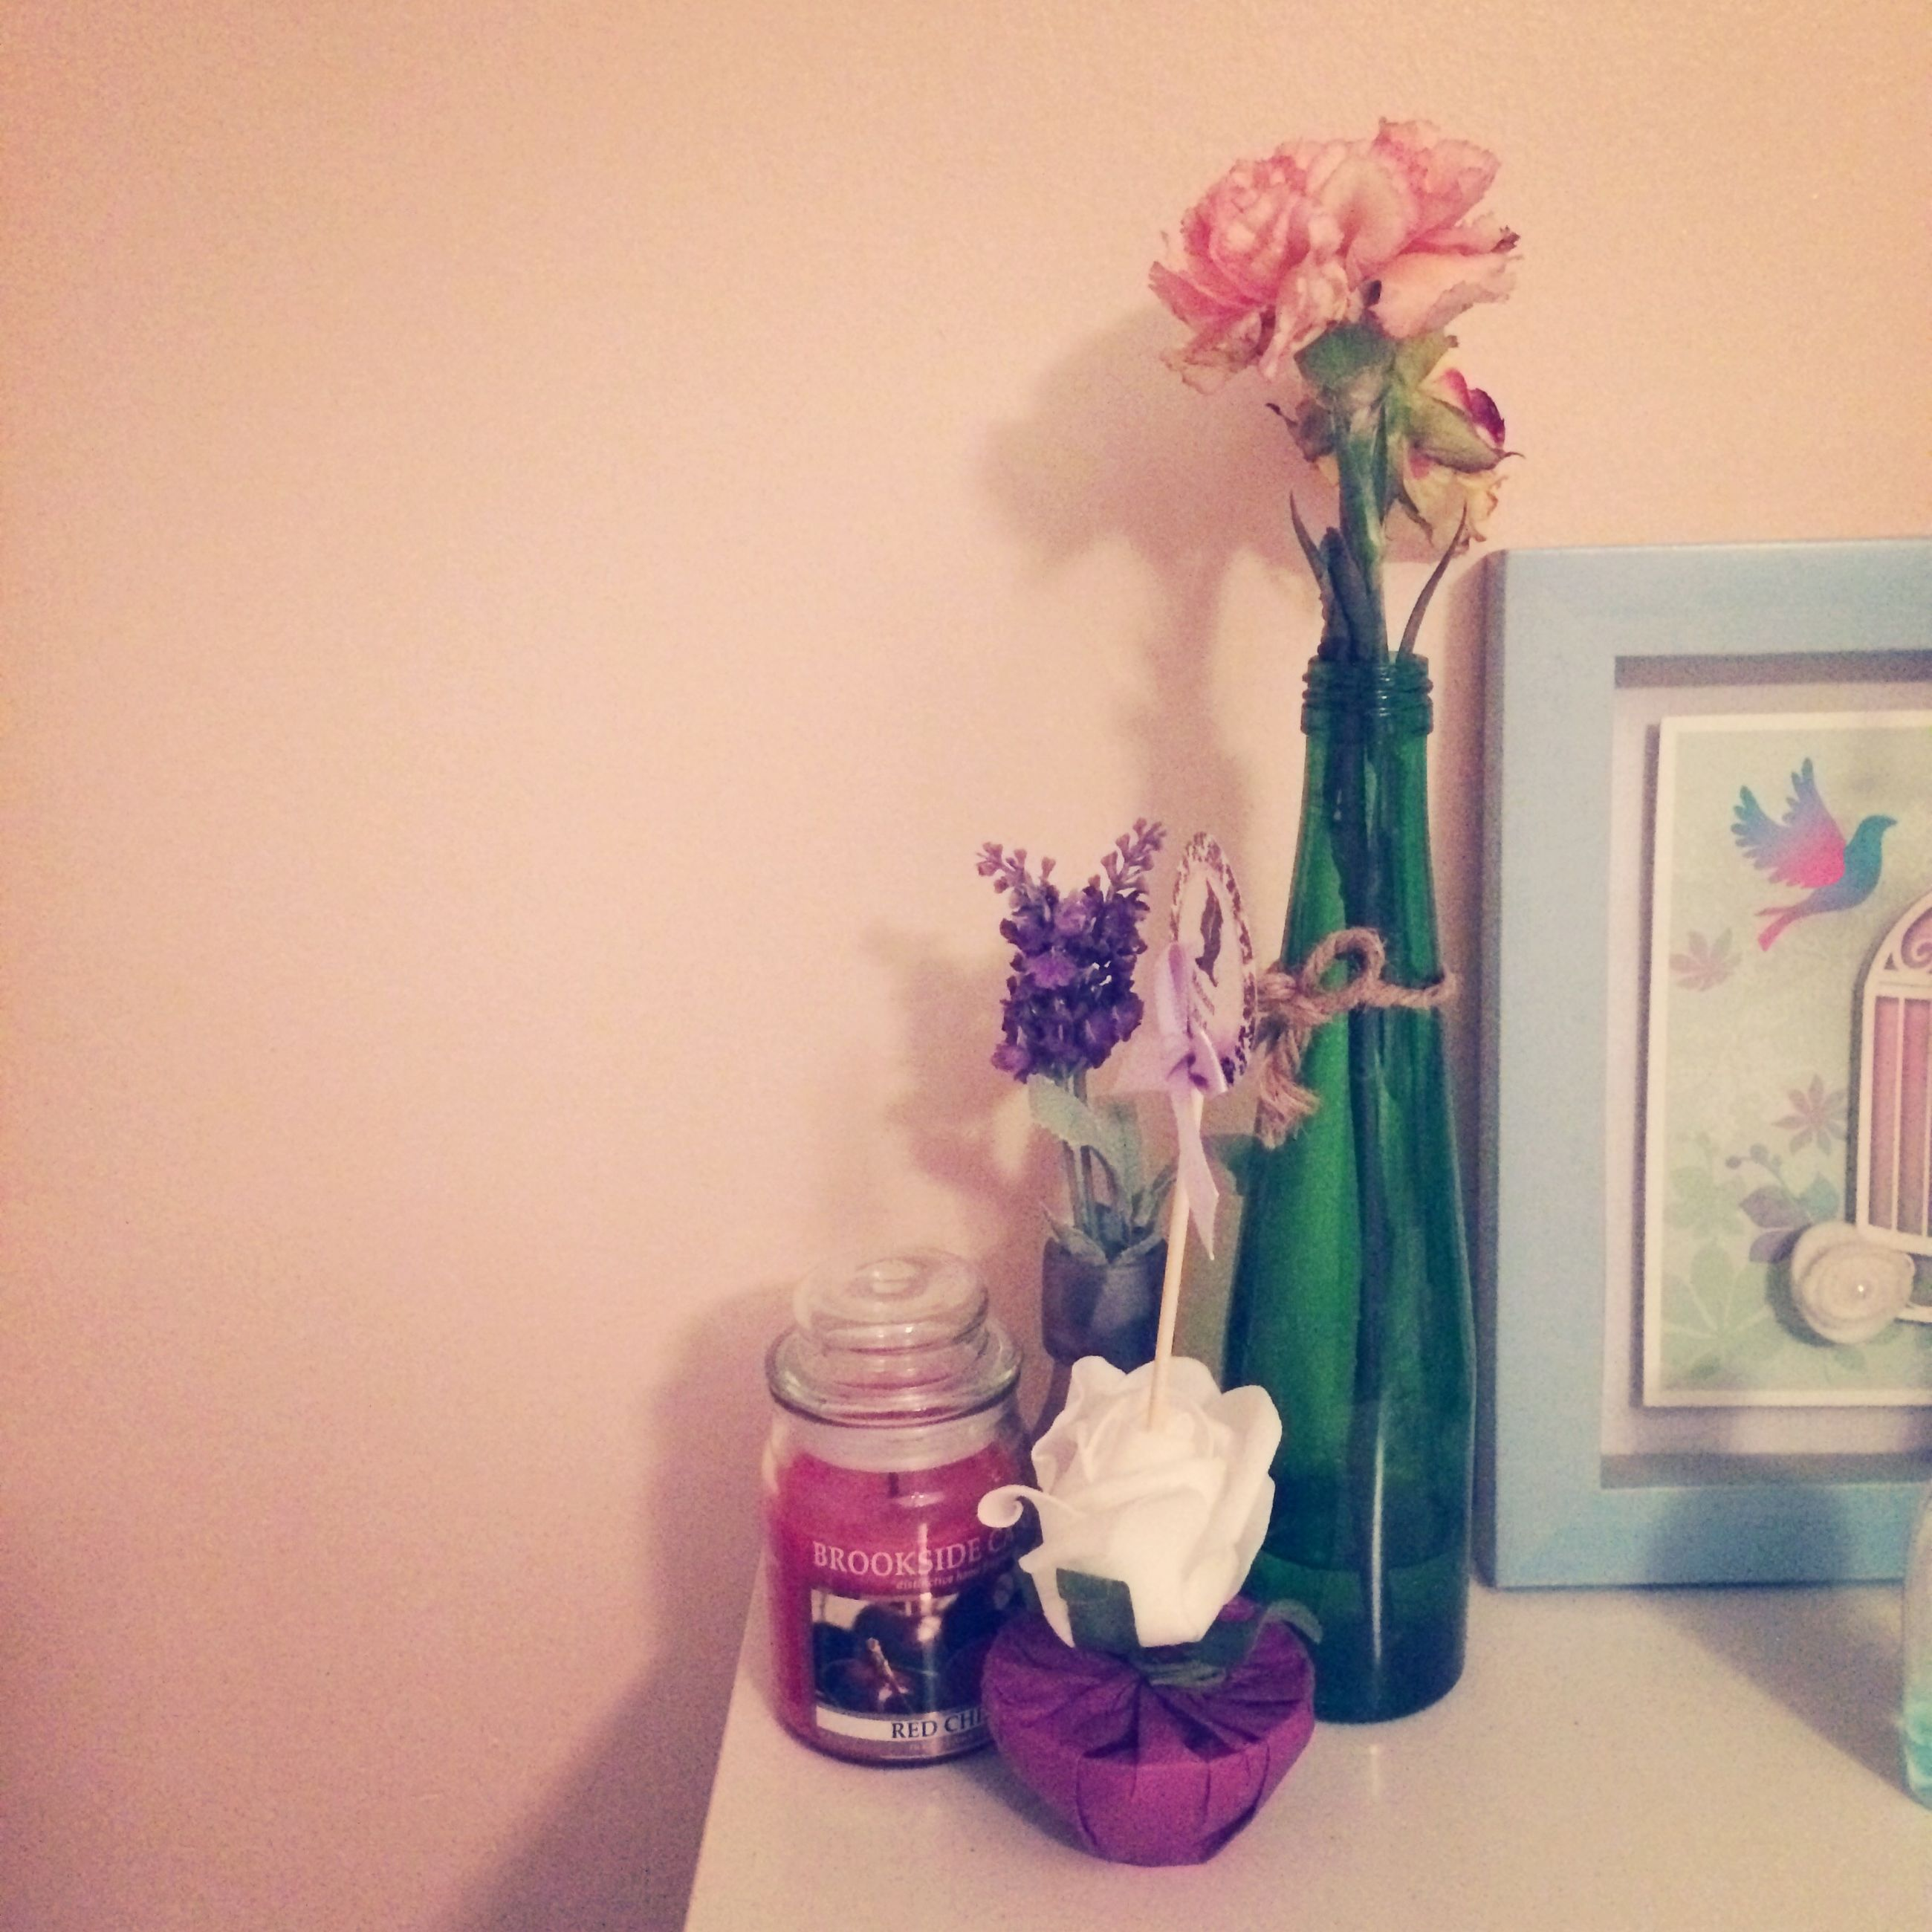 indoors, flower, vase, home interior, table, fragility, decoration, wall - building feature, potted plant, flower arrangement, freshness, still life, bunch of flowers, bouquet, petal, wall, close-up, pink color, flower pot, stem